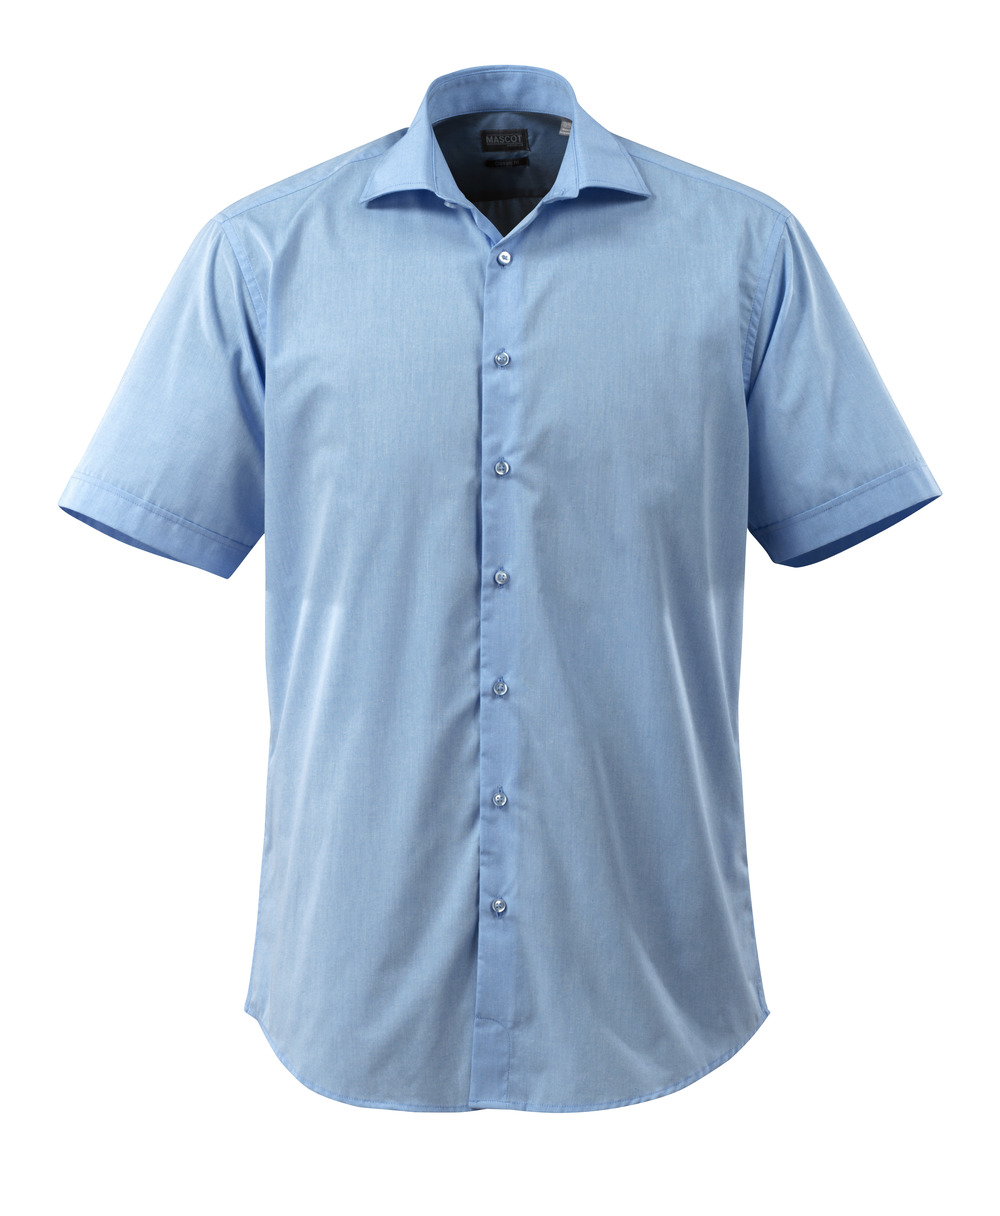 50632-984-71 Shirt, short-sleeved - light blue